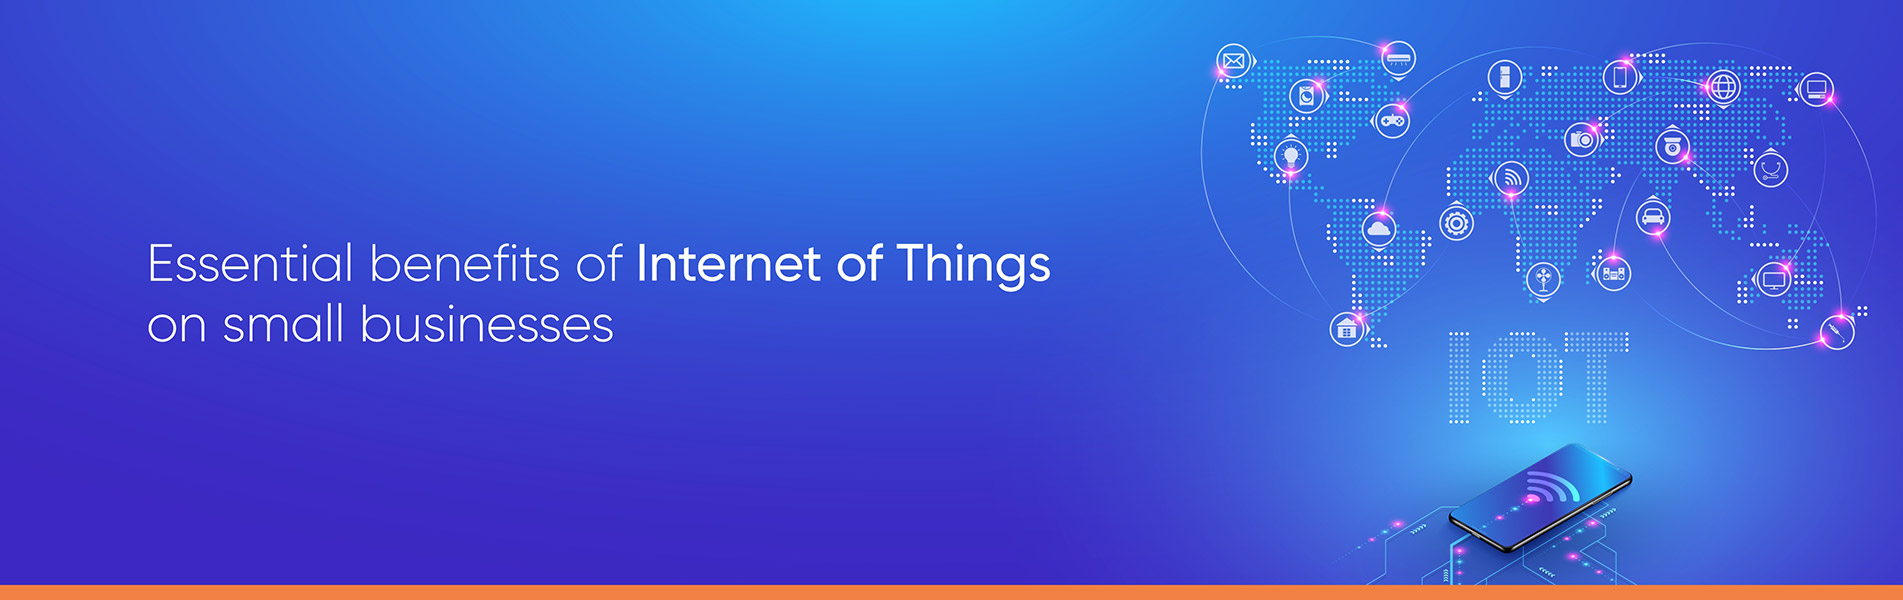 essential benefits, Internet of Things, small businesses